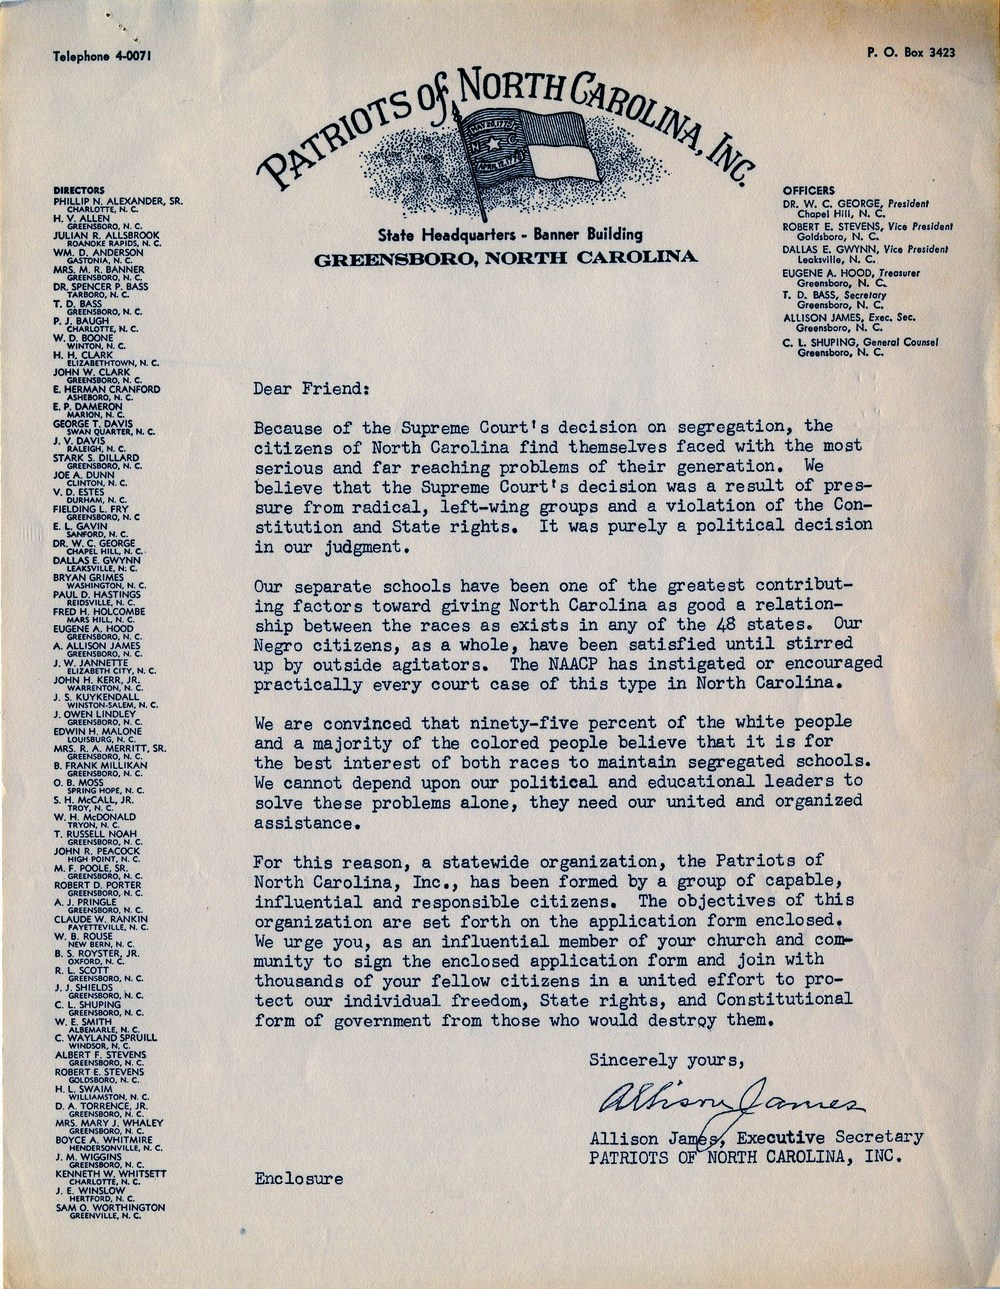 A letter from the Patriots of North Carolina soliciting members. Image courtesy David Neal.